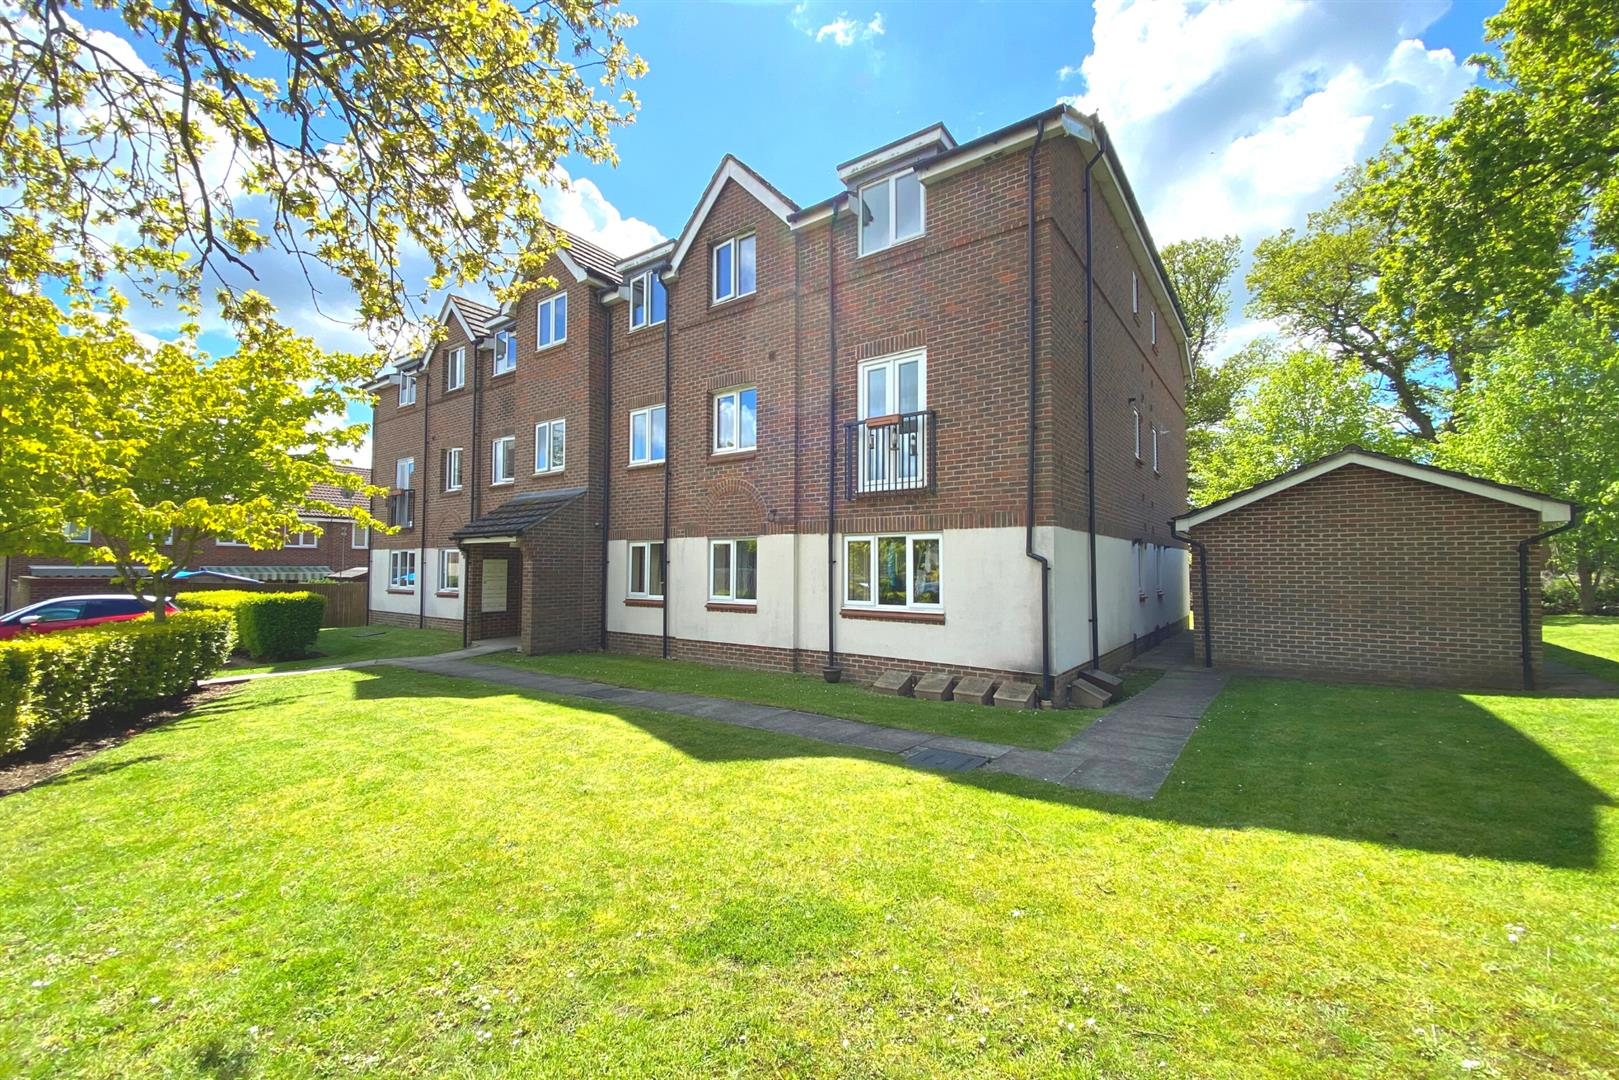 2 bed apartment for sale in Spencers Wood, RG7